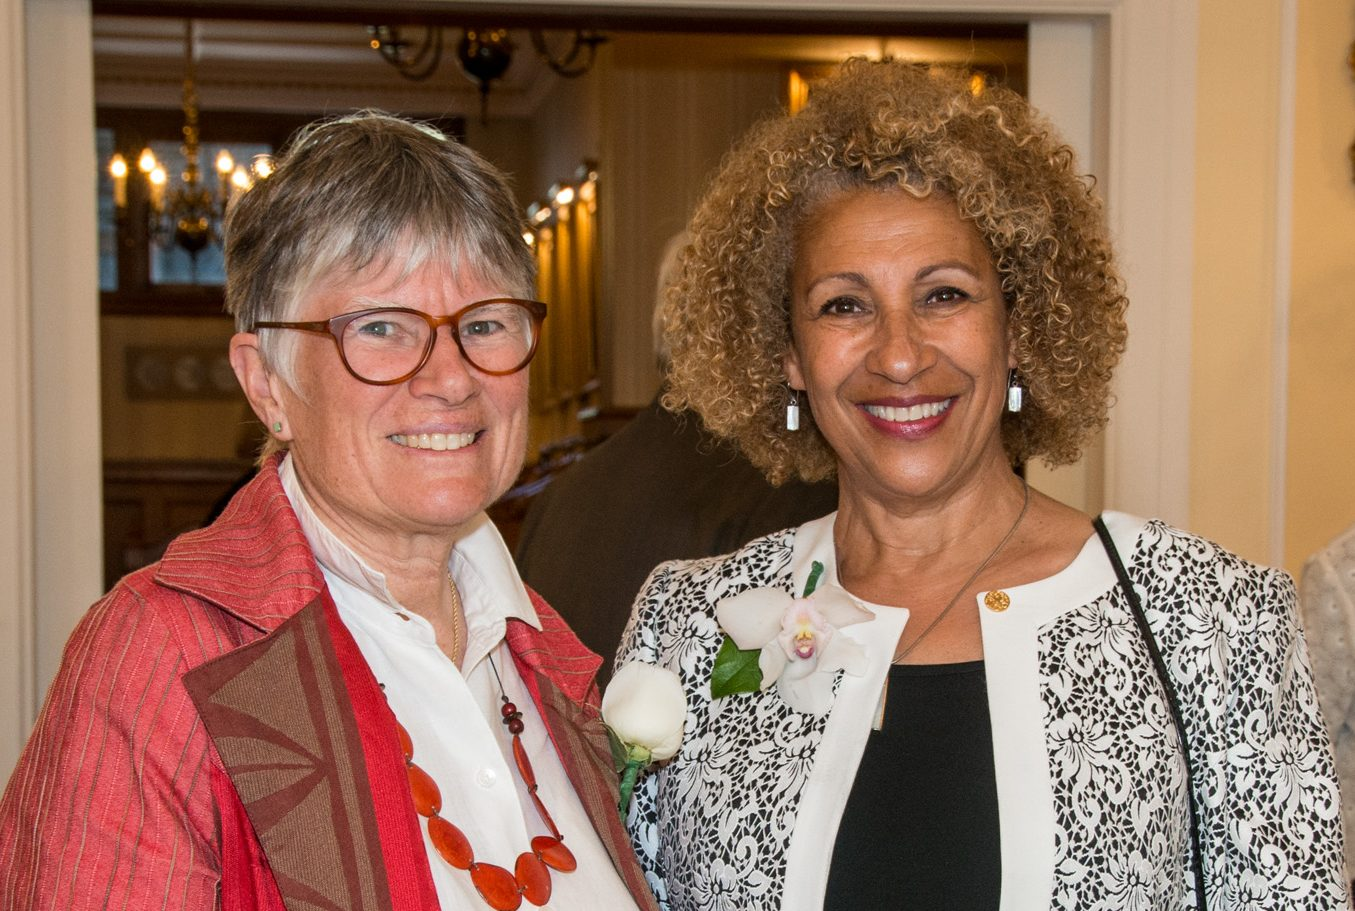 In the words of Lolly Bennett, 2017 Community Award recipient